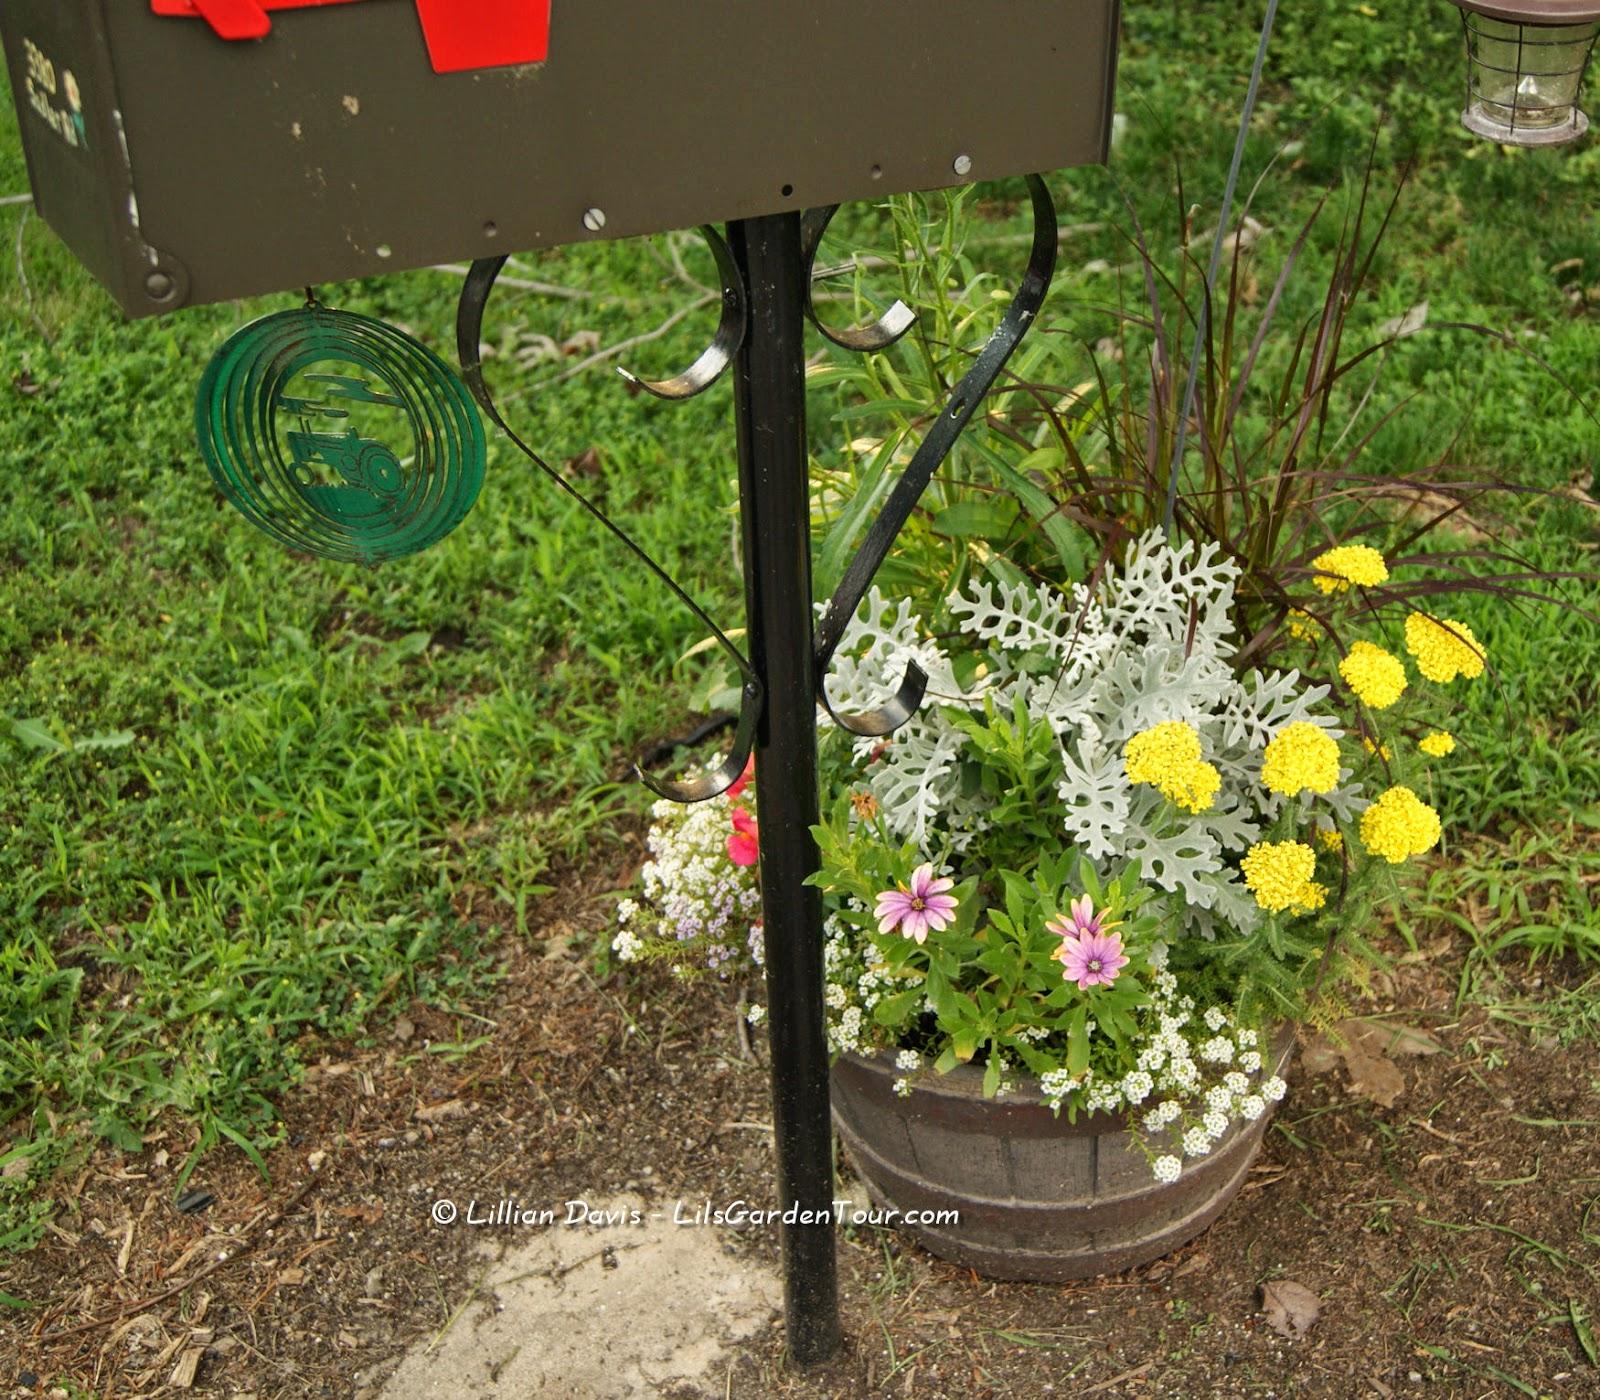 Hopefully Deer Resistant Flower Containers Lils Garden Tour